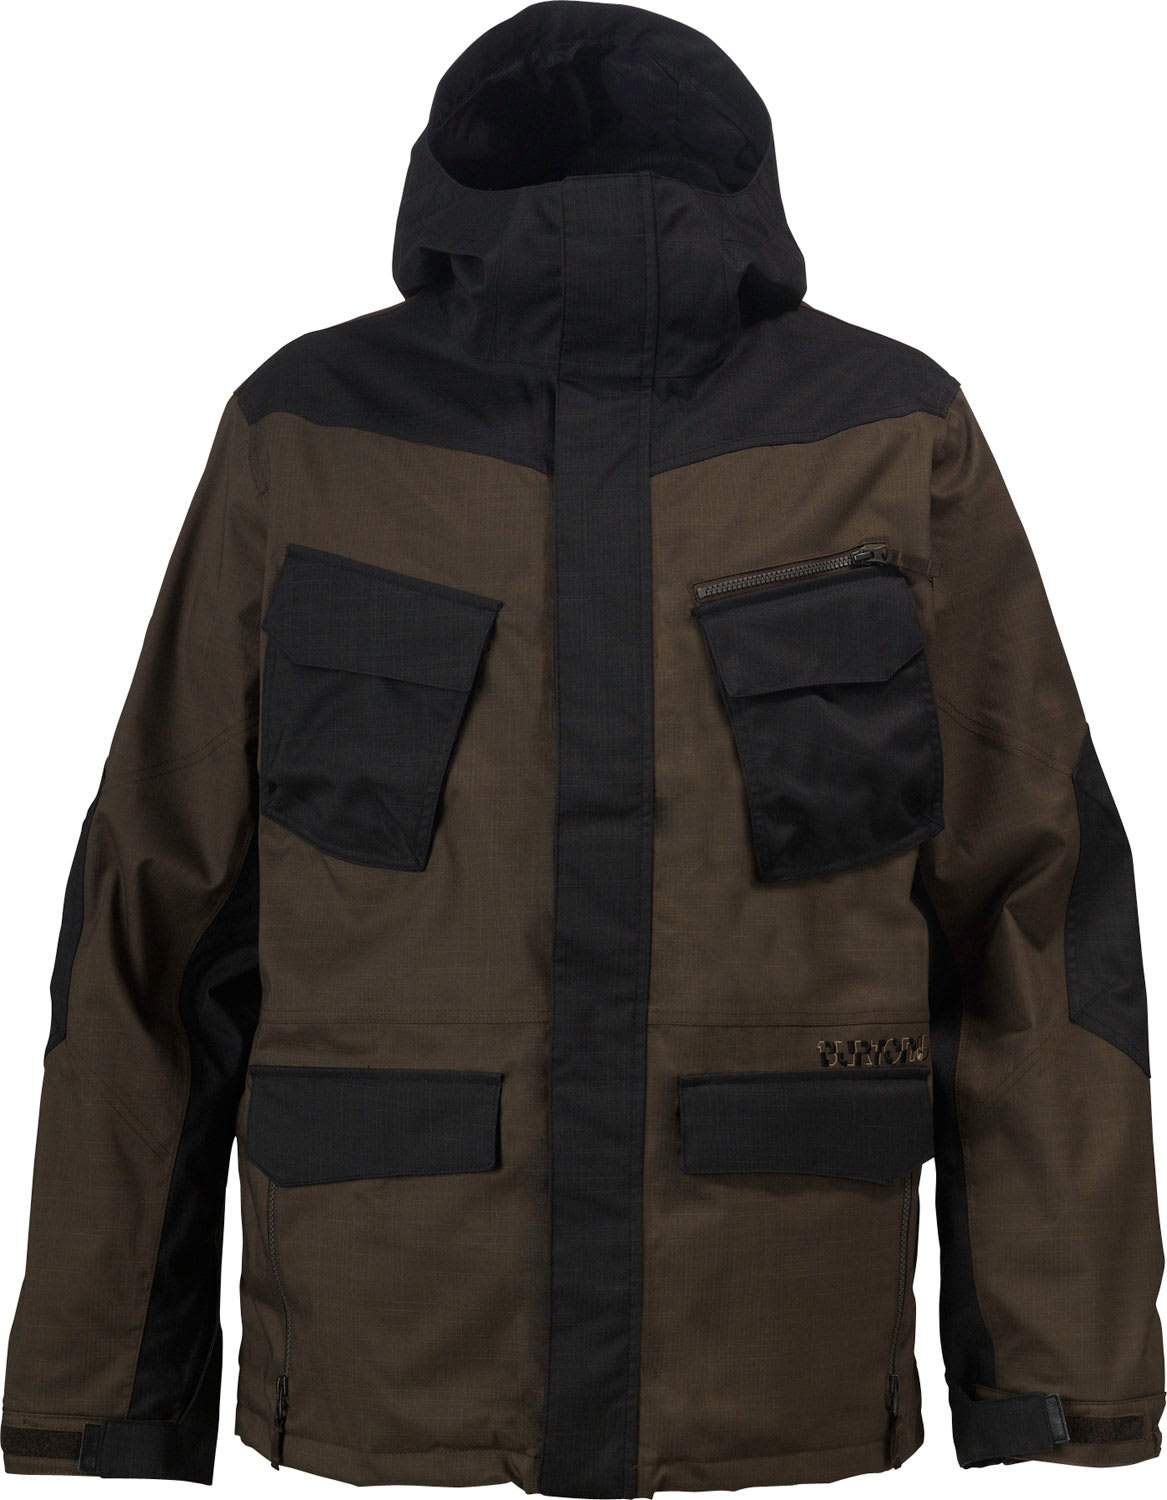 Shop for Burton Traction Snowboard Jacket Black/Havana - Men's